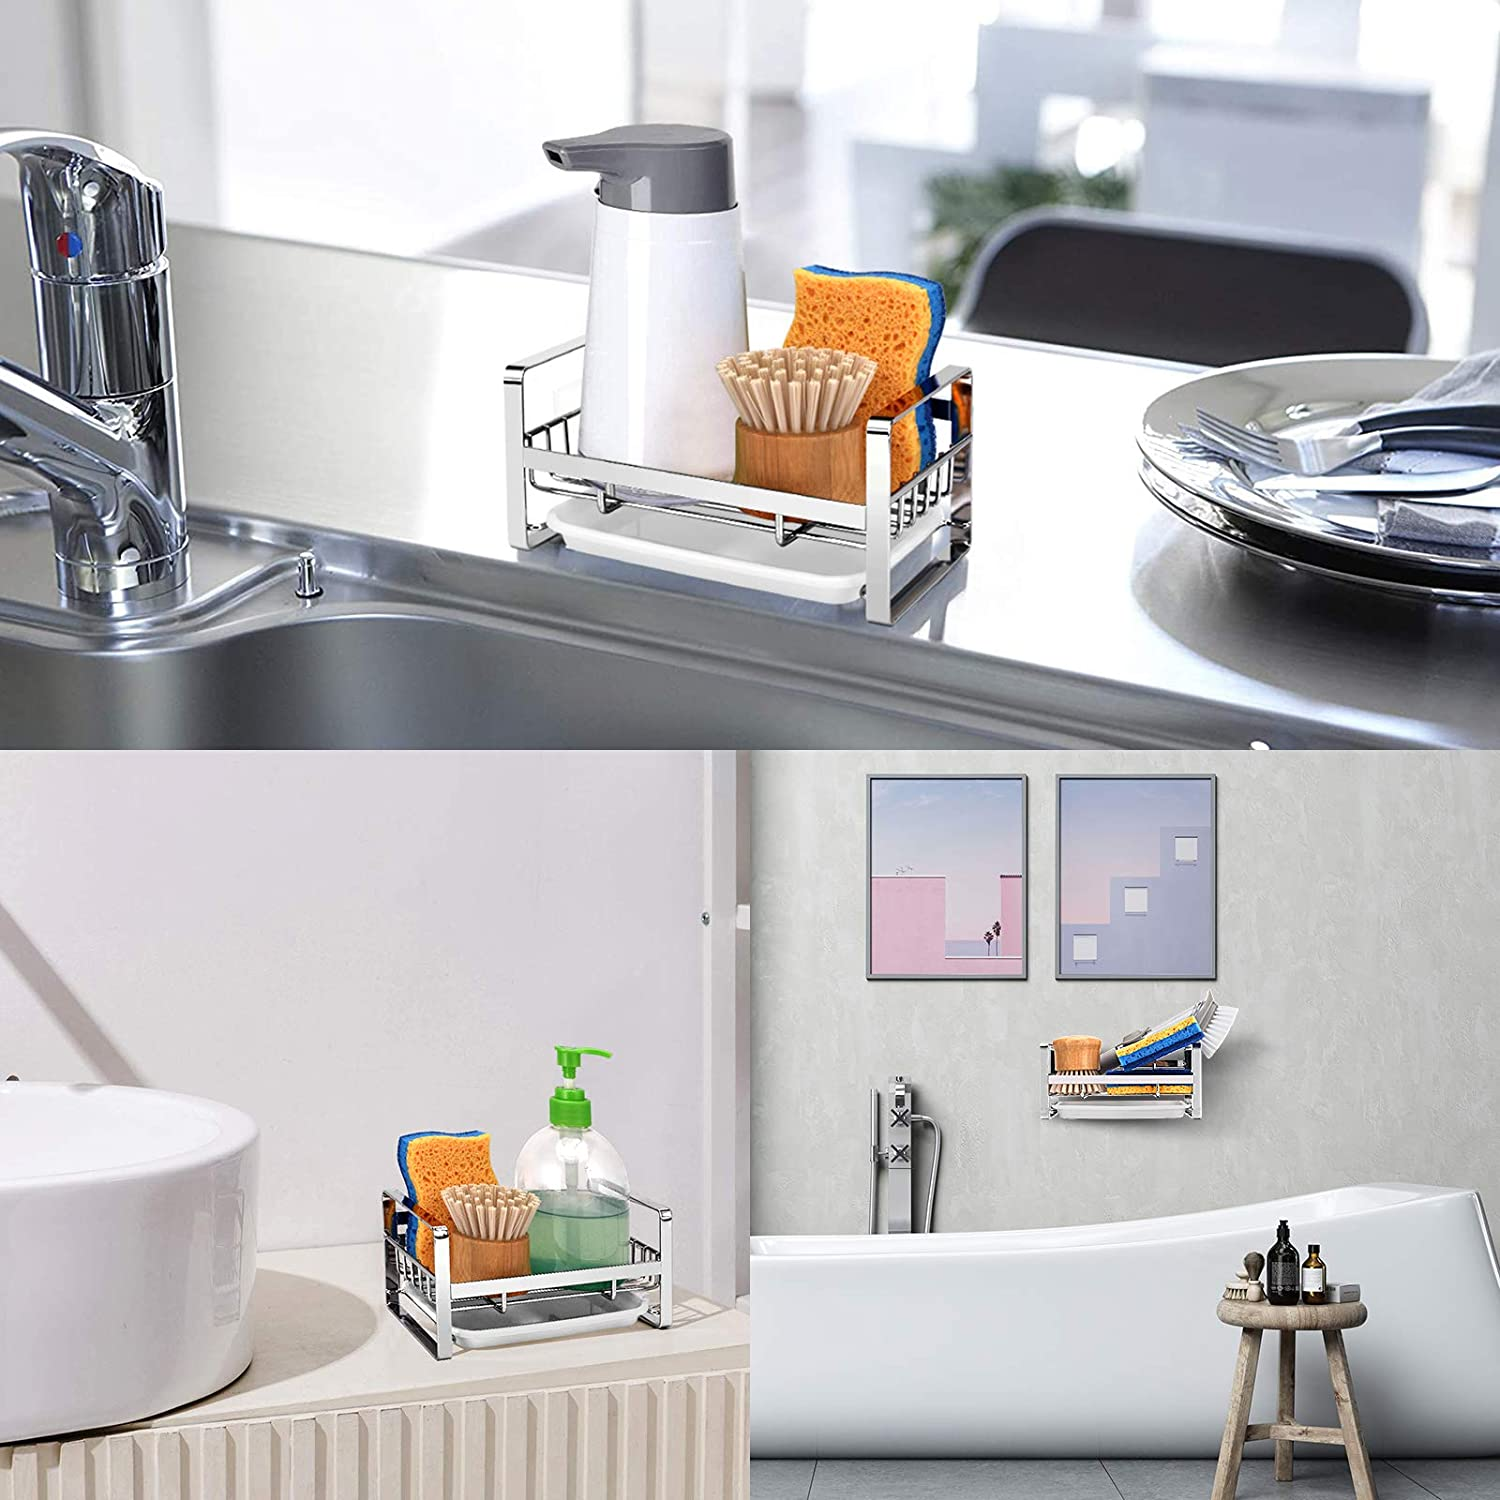 Buy Vanten Kitchen Sink Caddy Organizer Sponge Holder For Sink Sink Tray Drainer Rack Dish Rags Brush Soap Storage Countertop With Removable Front Drain Pan Not Including Dispenser And Sponge Online In